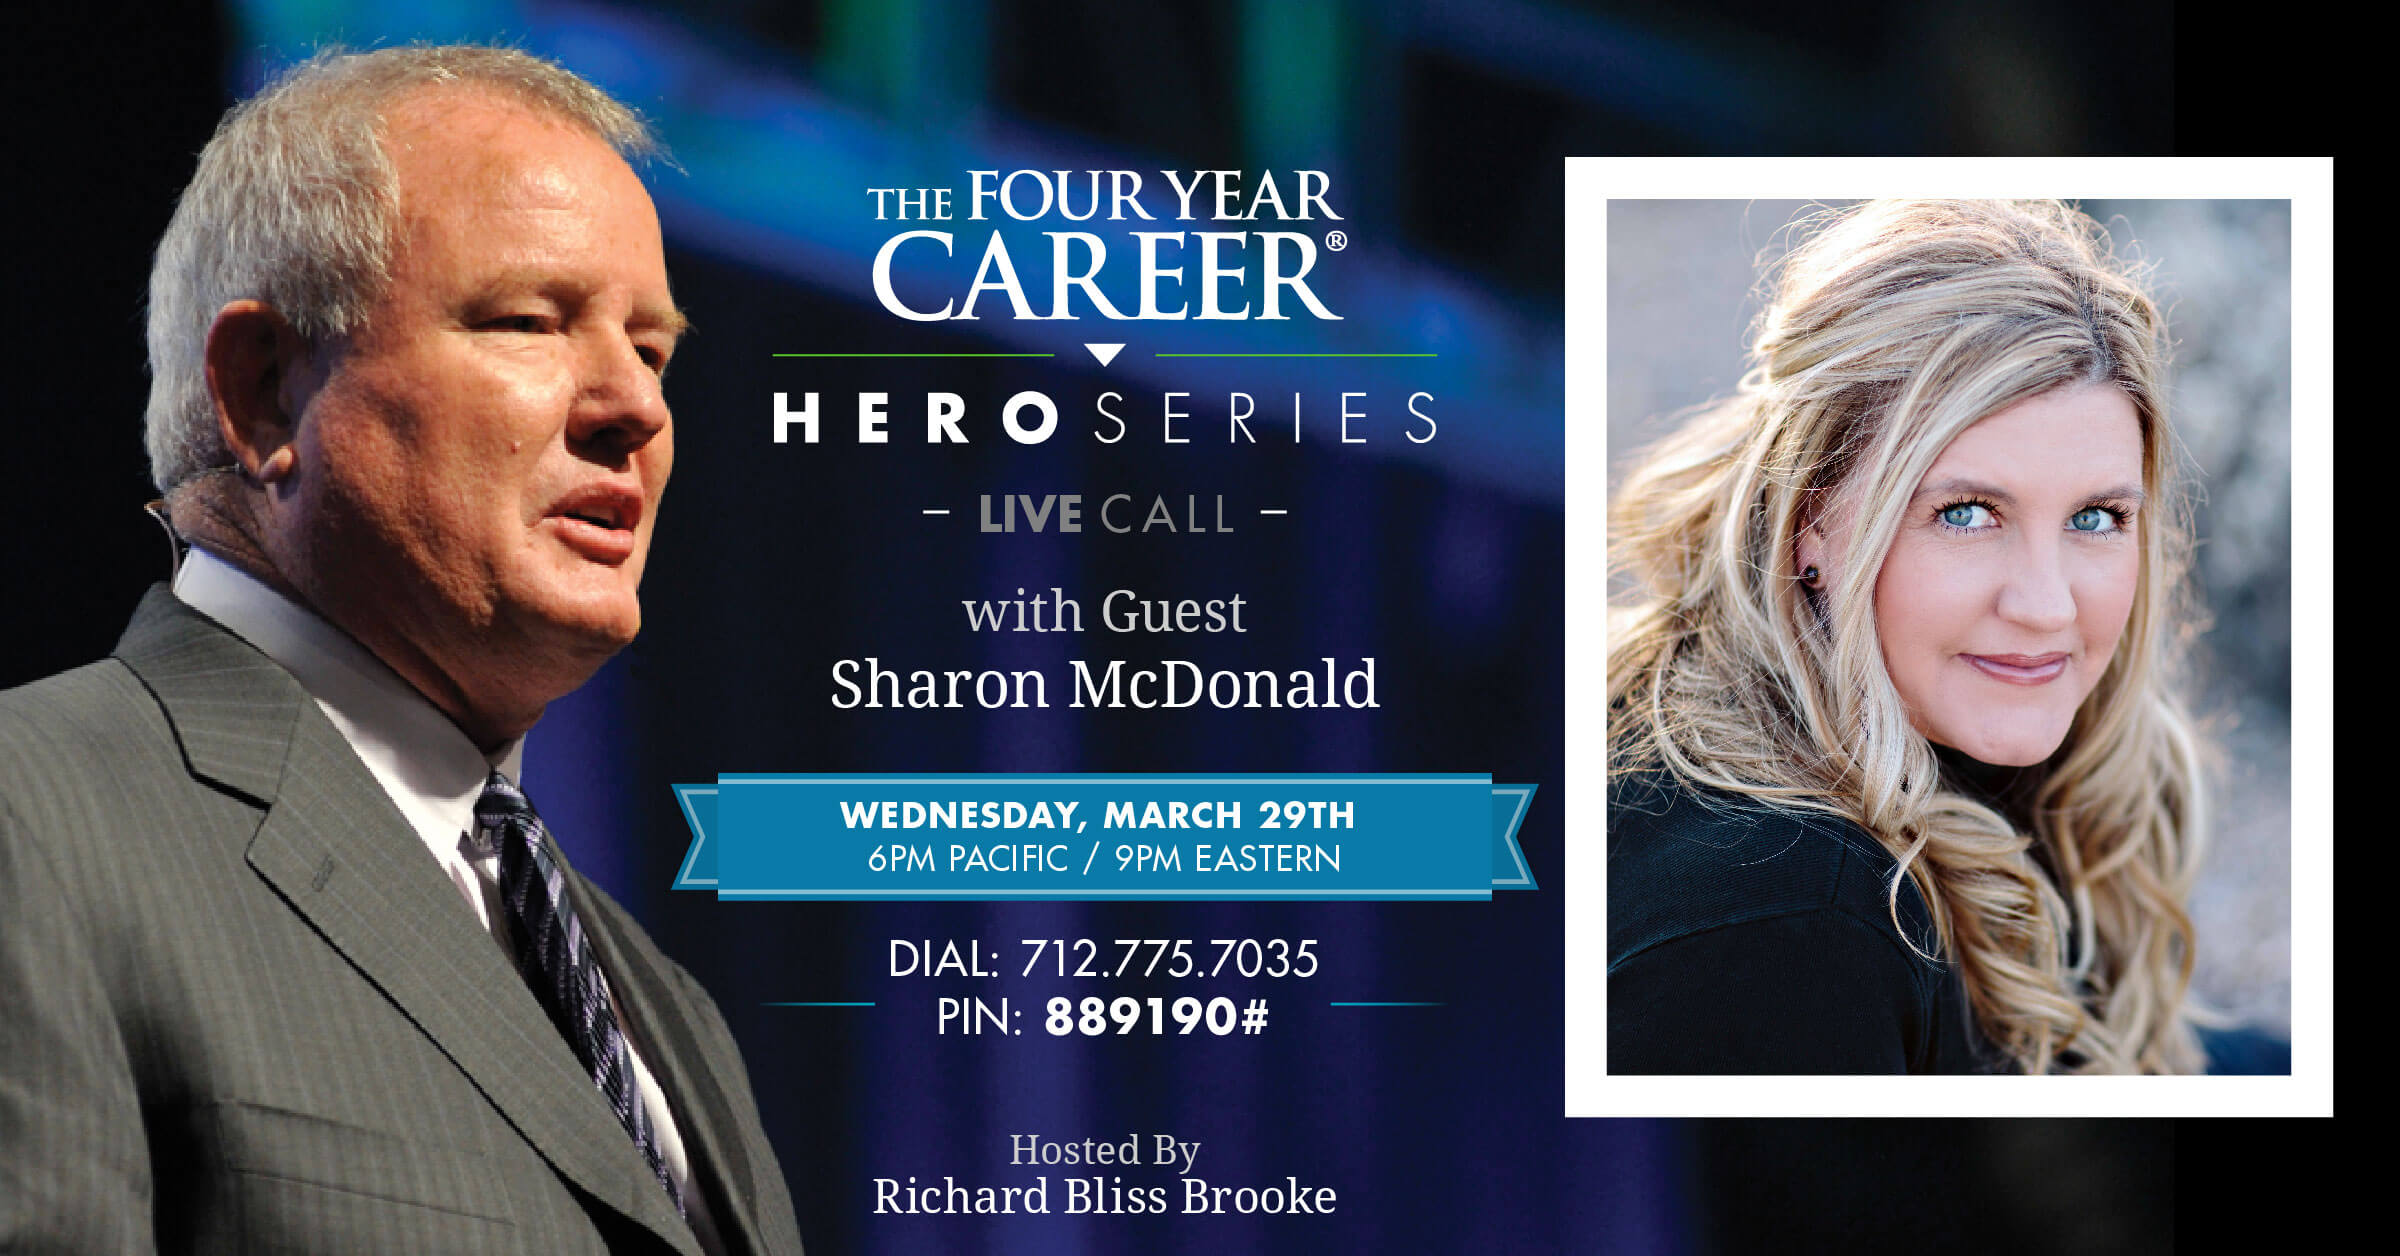 Network Marketing The Four Year Career Hero Series Live Call with Sharon McDonald